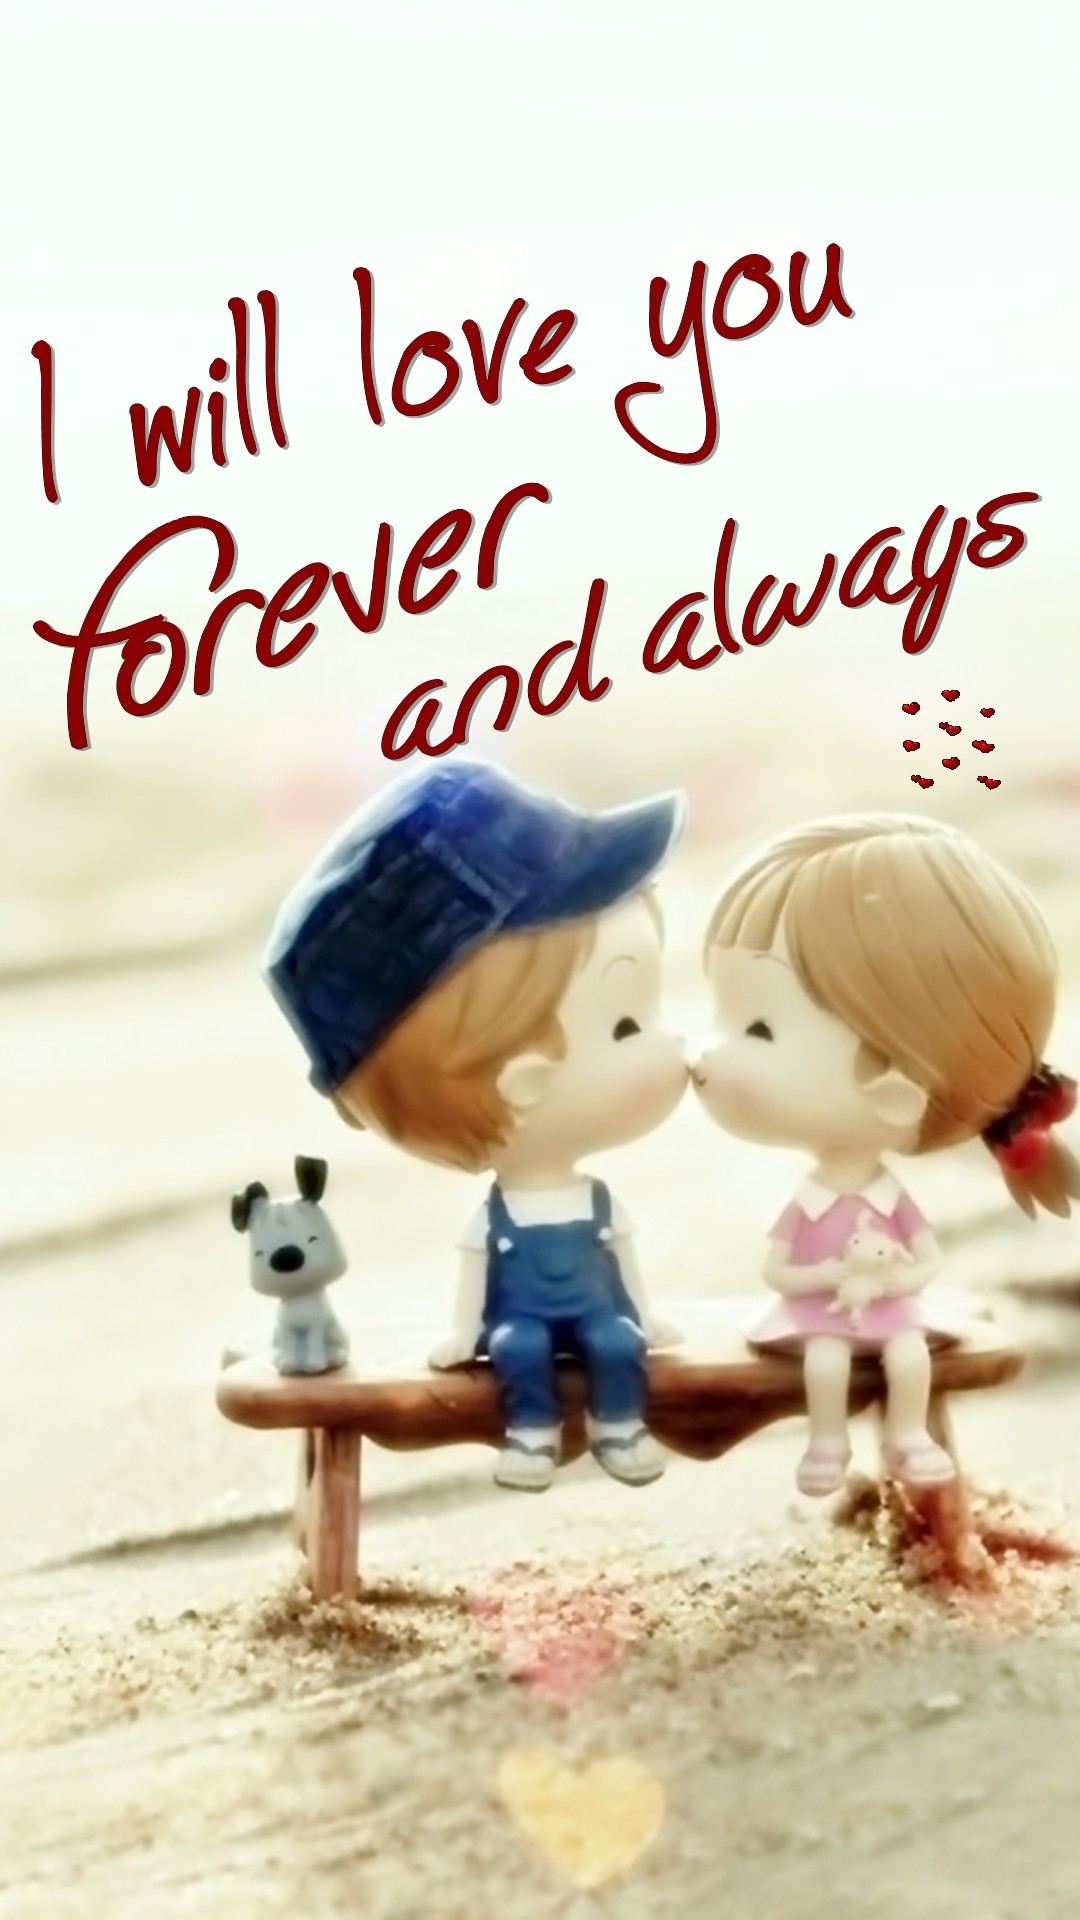 Tap image for more love wallpapers! Love you forever – @mobile9 | iPhone 6